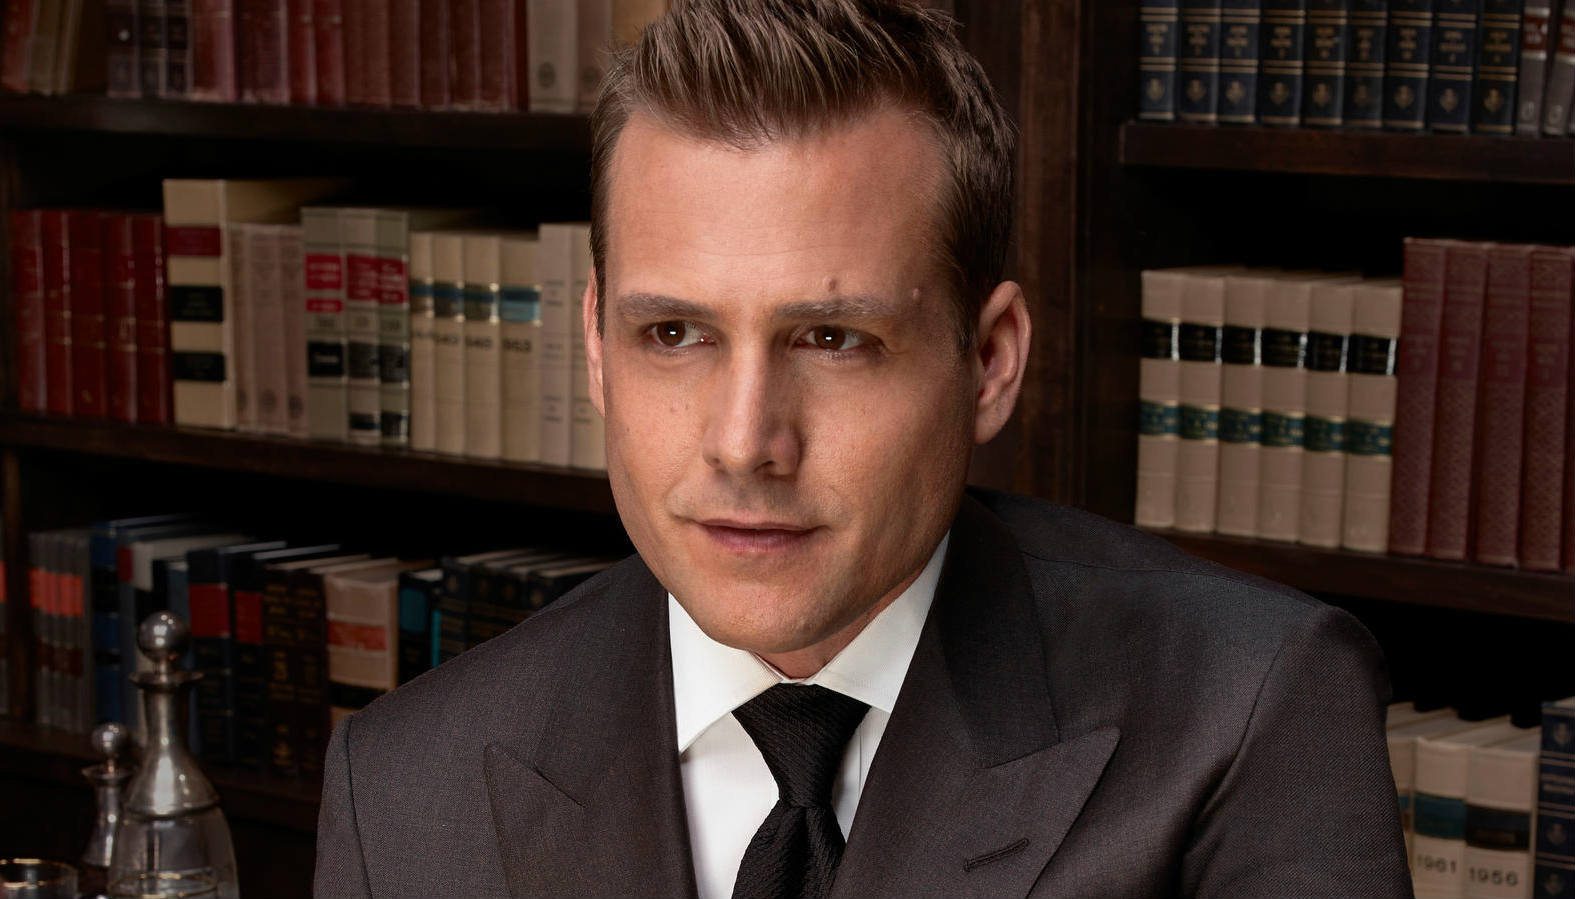 Harvey-Specter-Suits-Succes